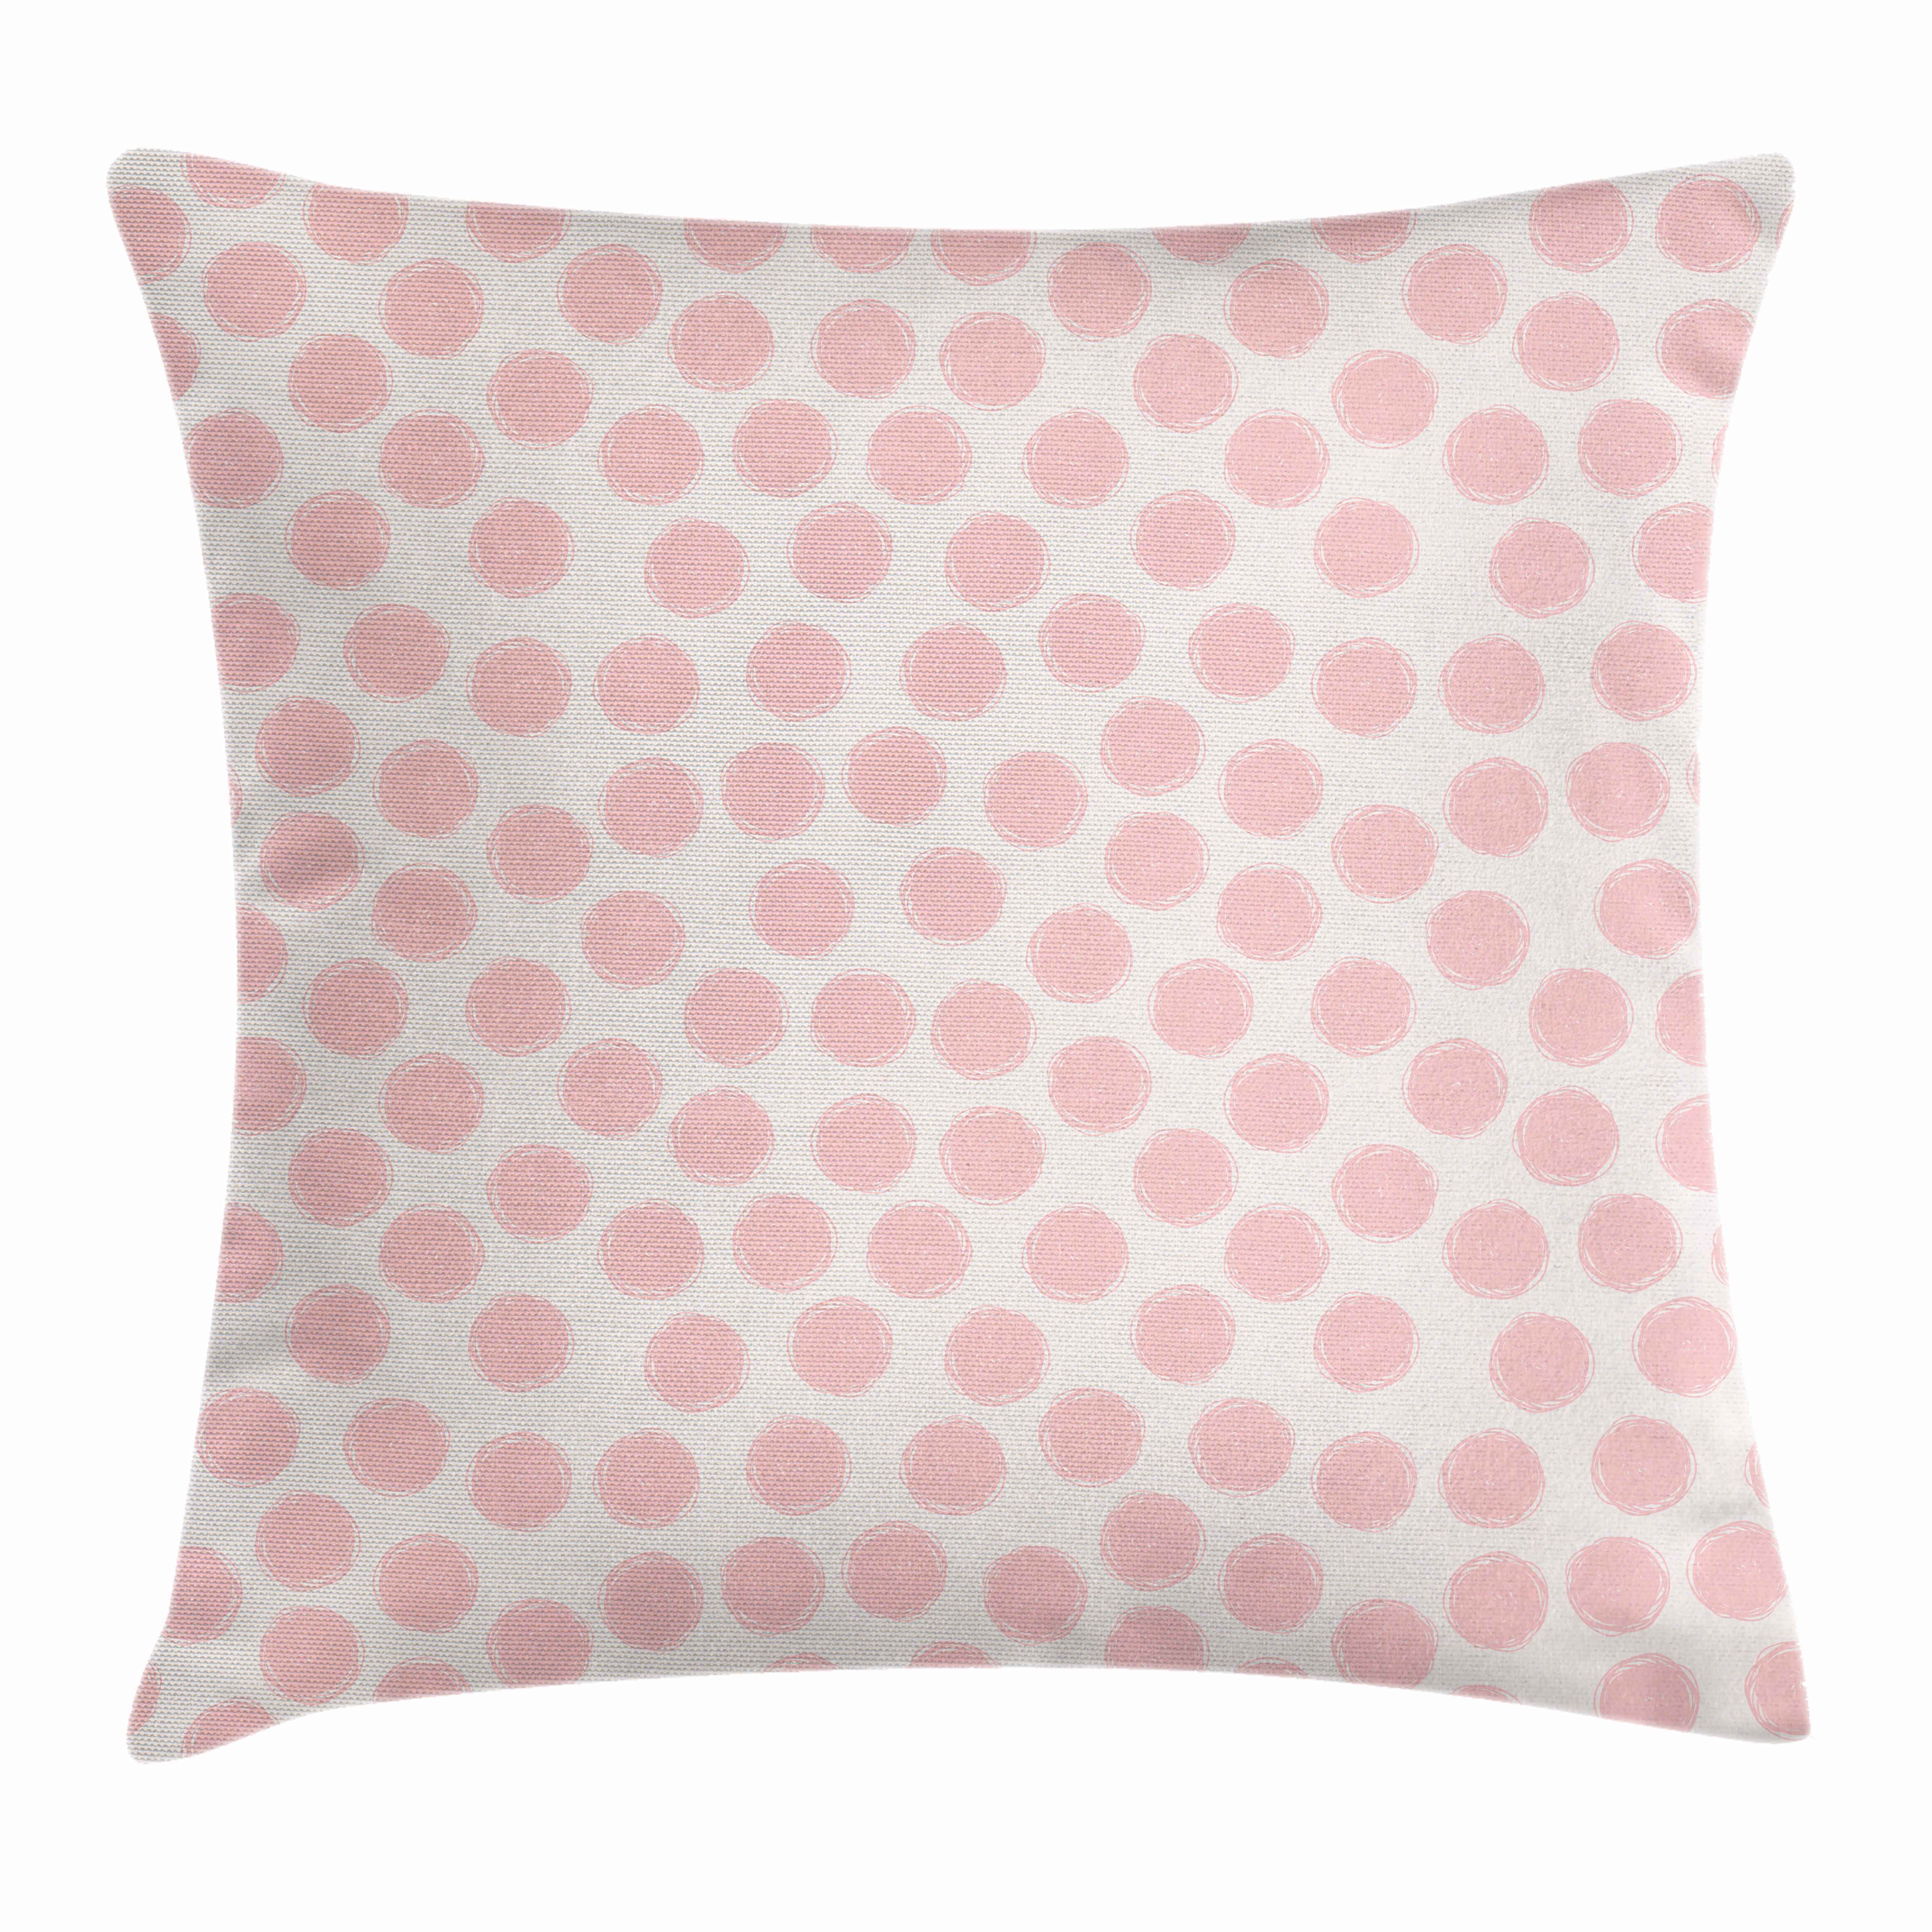 Kids Throw Pillow Cushion Cover, Hand Drawn Style Dots in Pastel Color and Retro Style Sweet Childhood Pattern, Decorative Square Accent Pillow Case, 16 X 16 Inches, Blush and Coconut, by Ambesonne